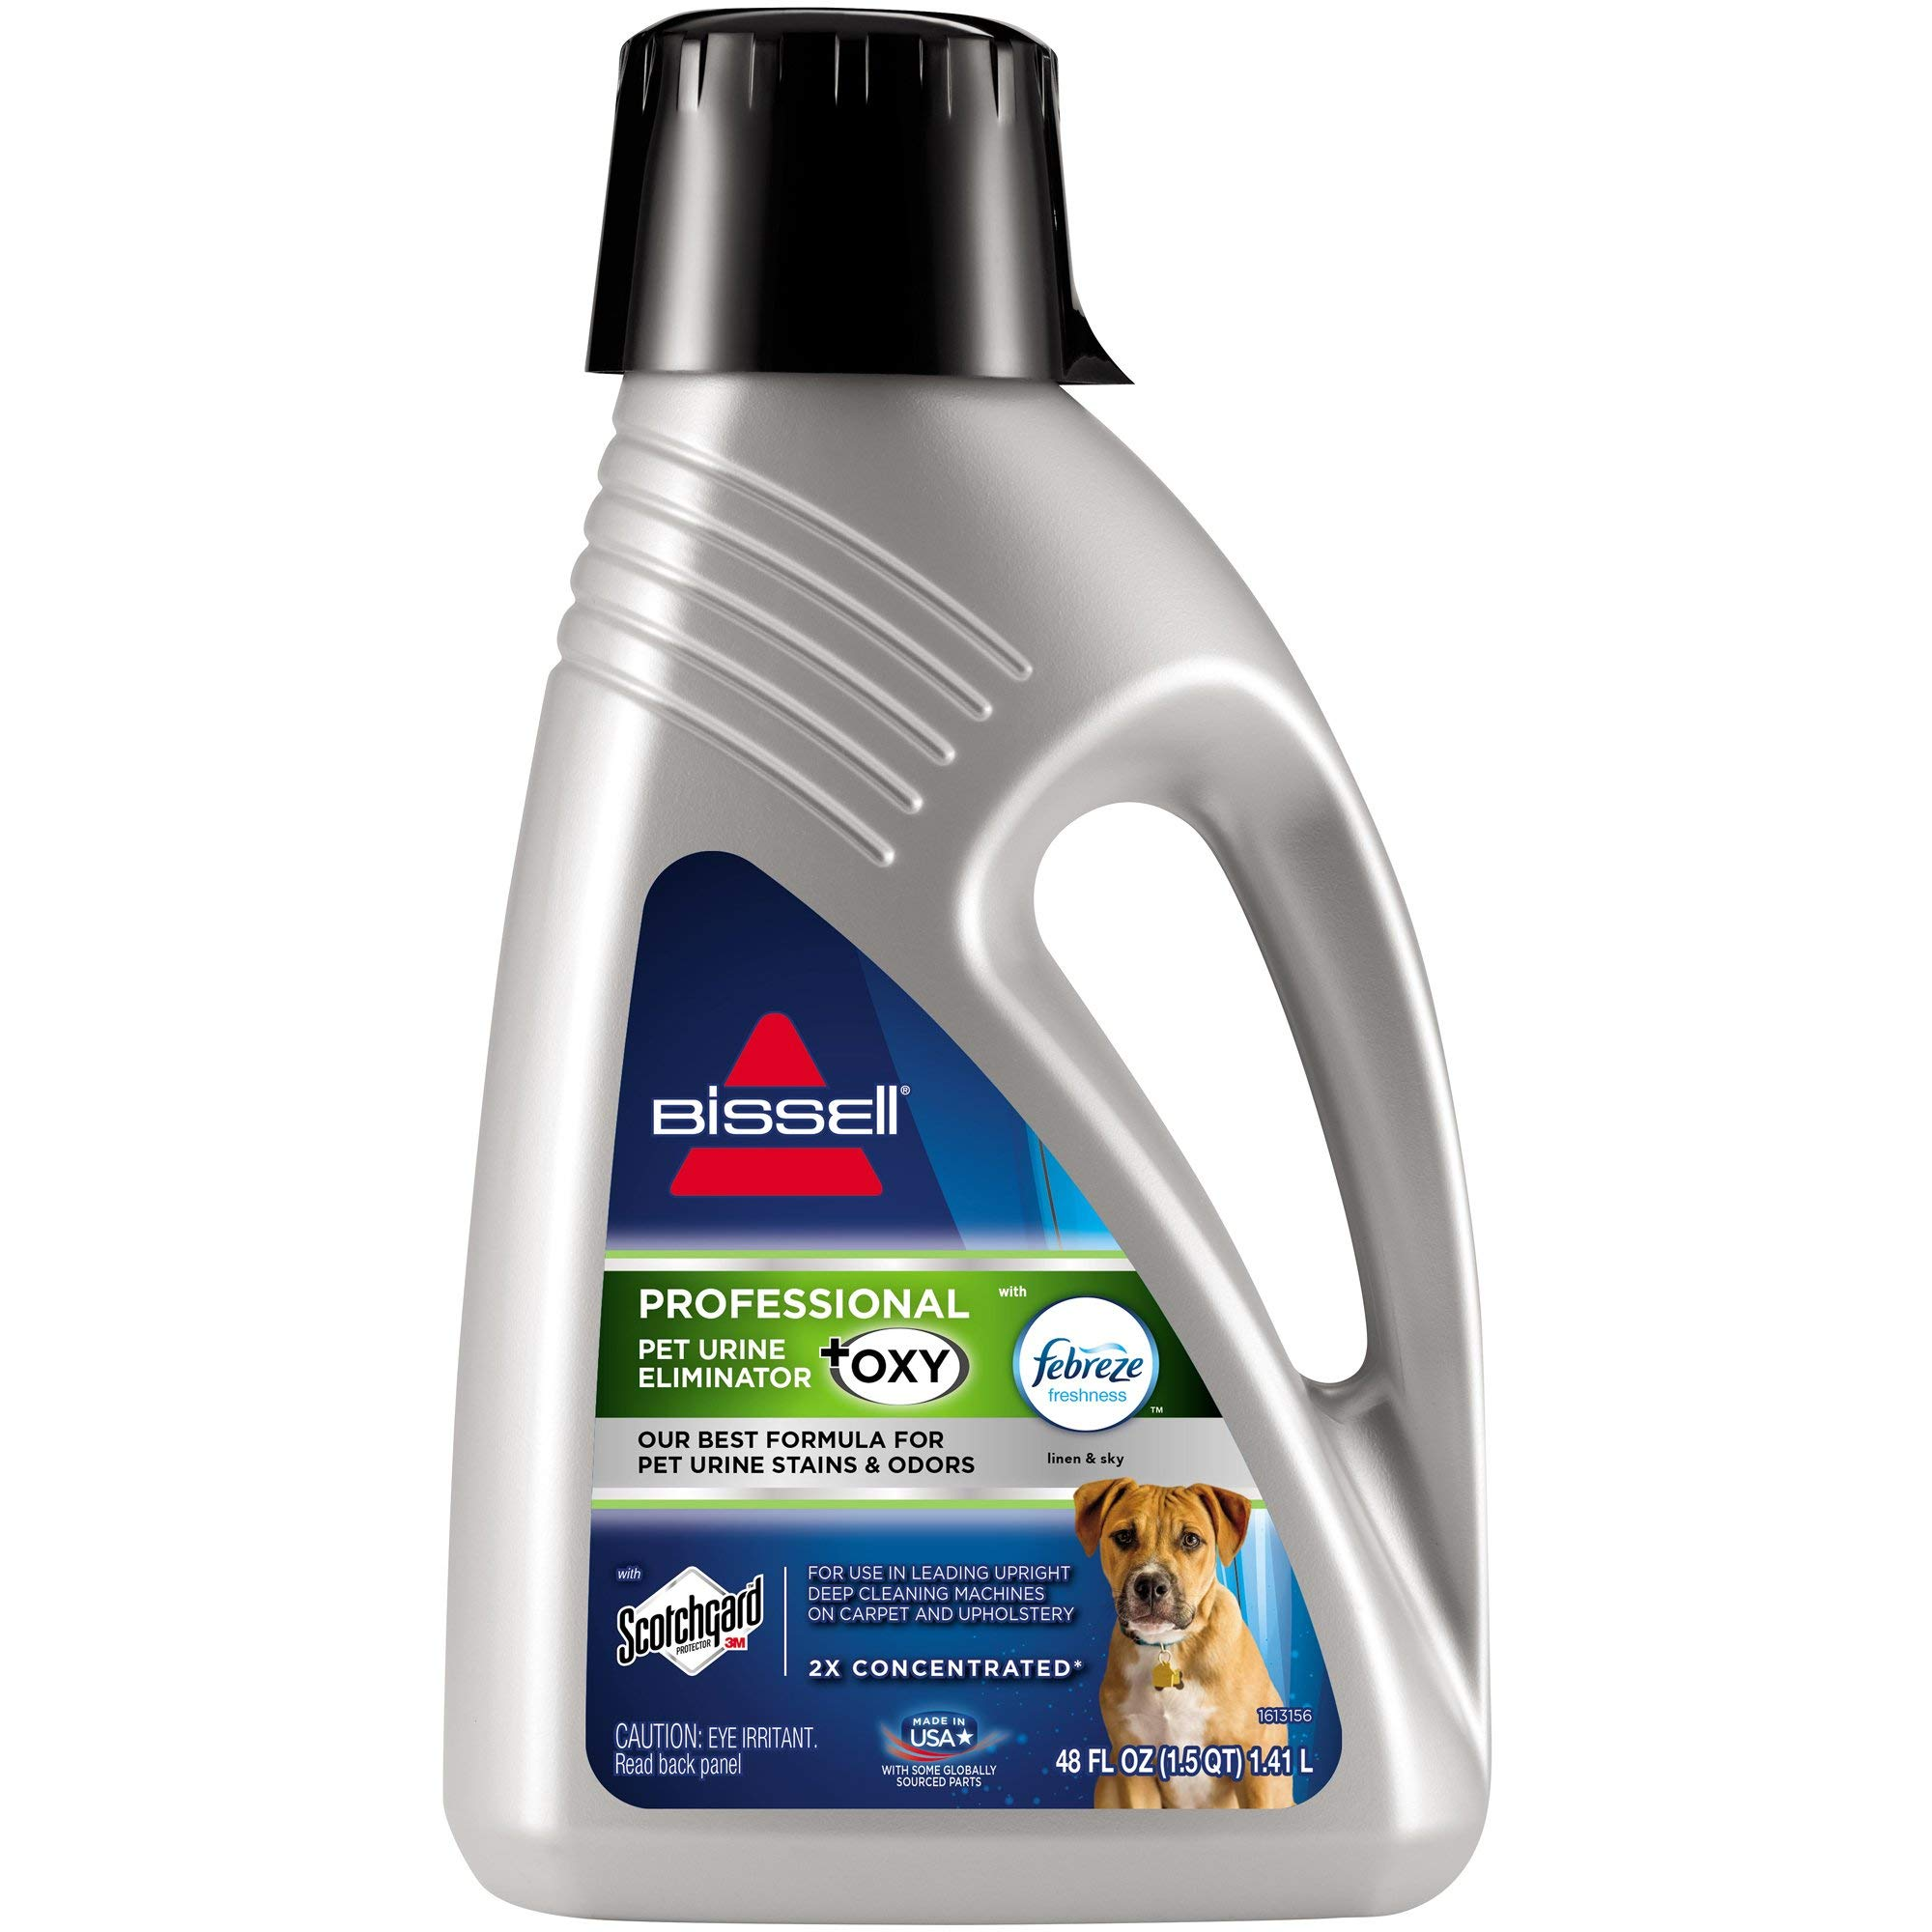 BISSELL Professional Pet Urine Elimator with Oxy and Febreze Carpet Cleaner Shampoo (Renewed) by Bissell